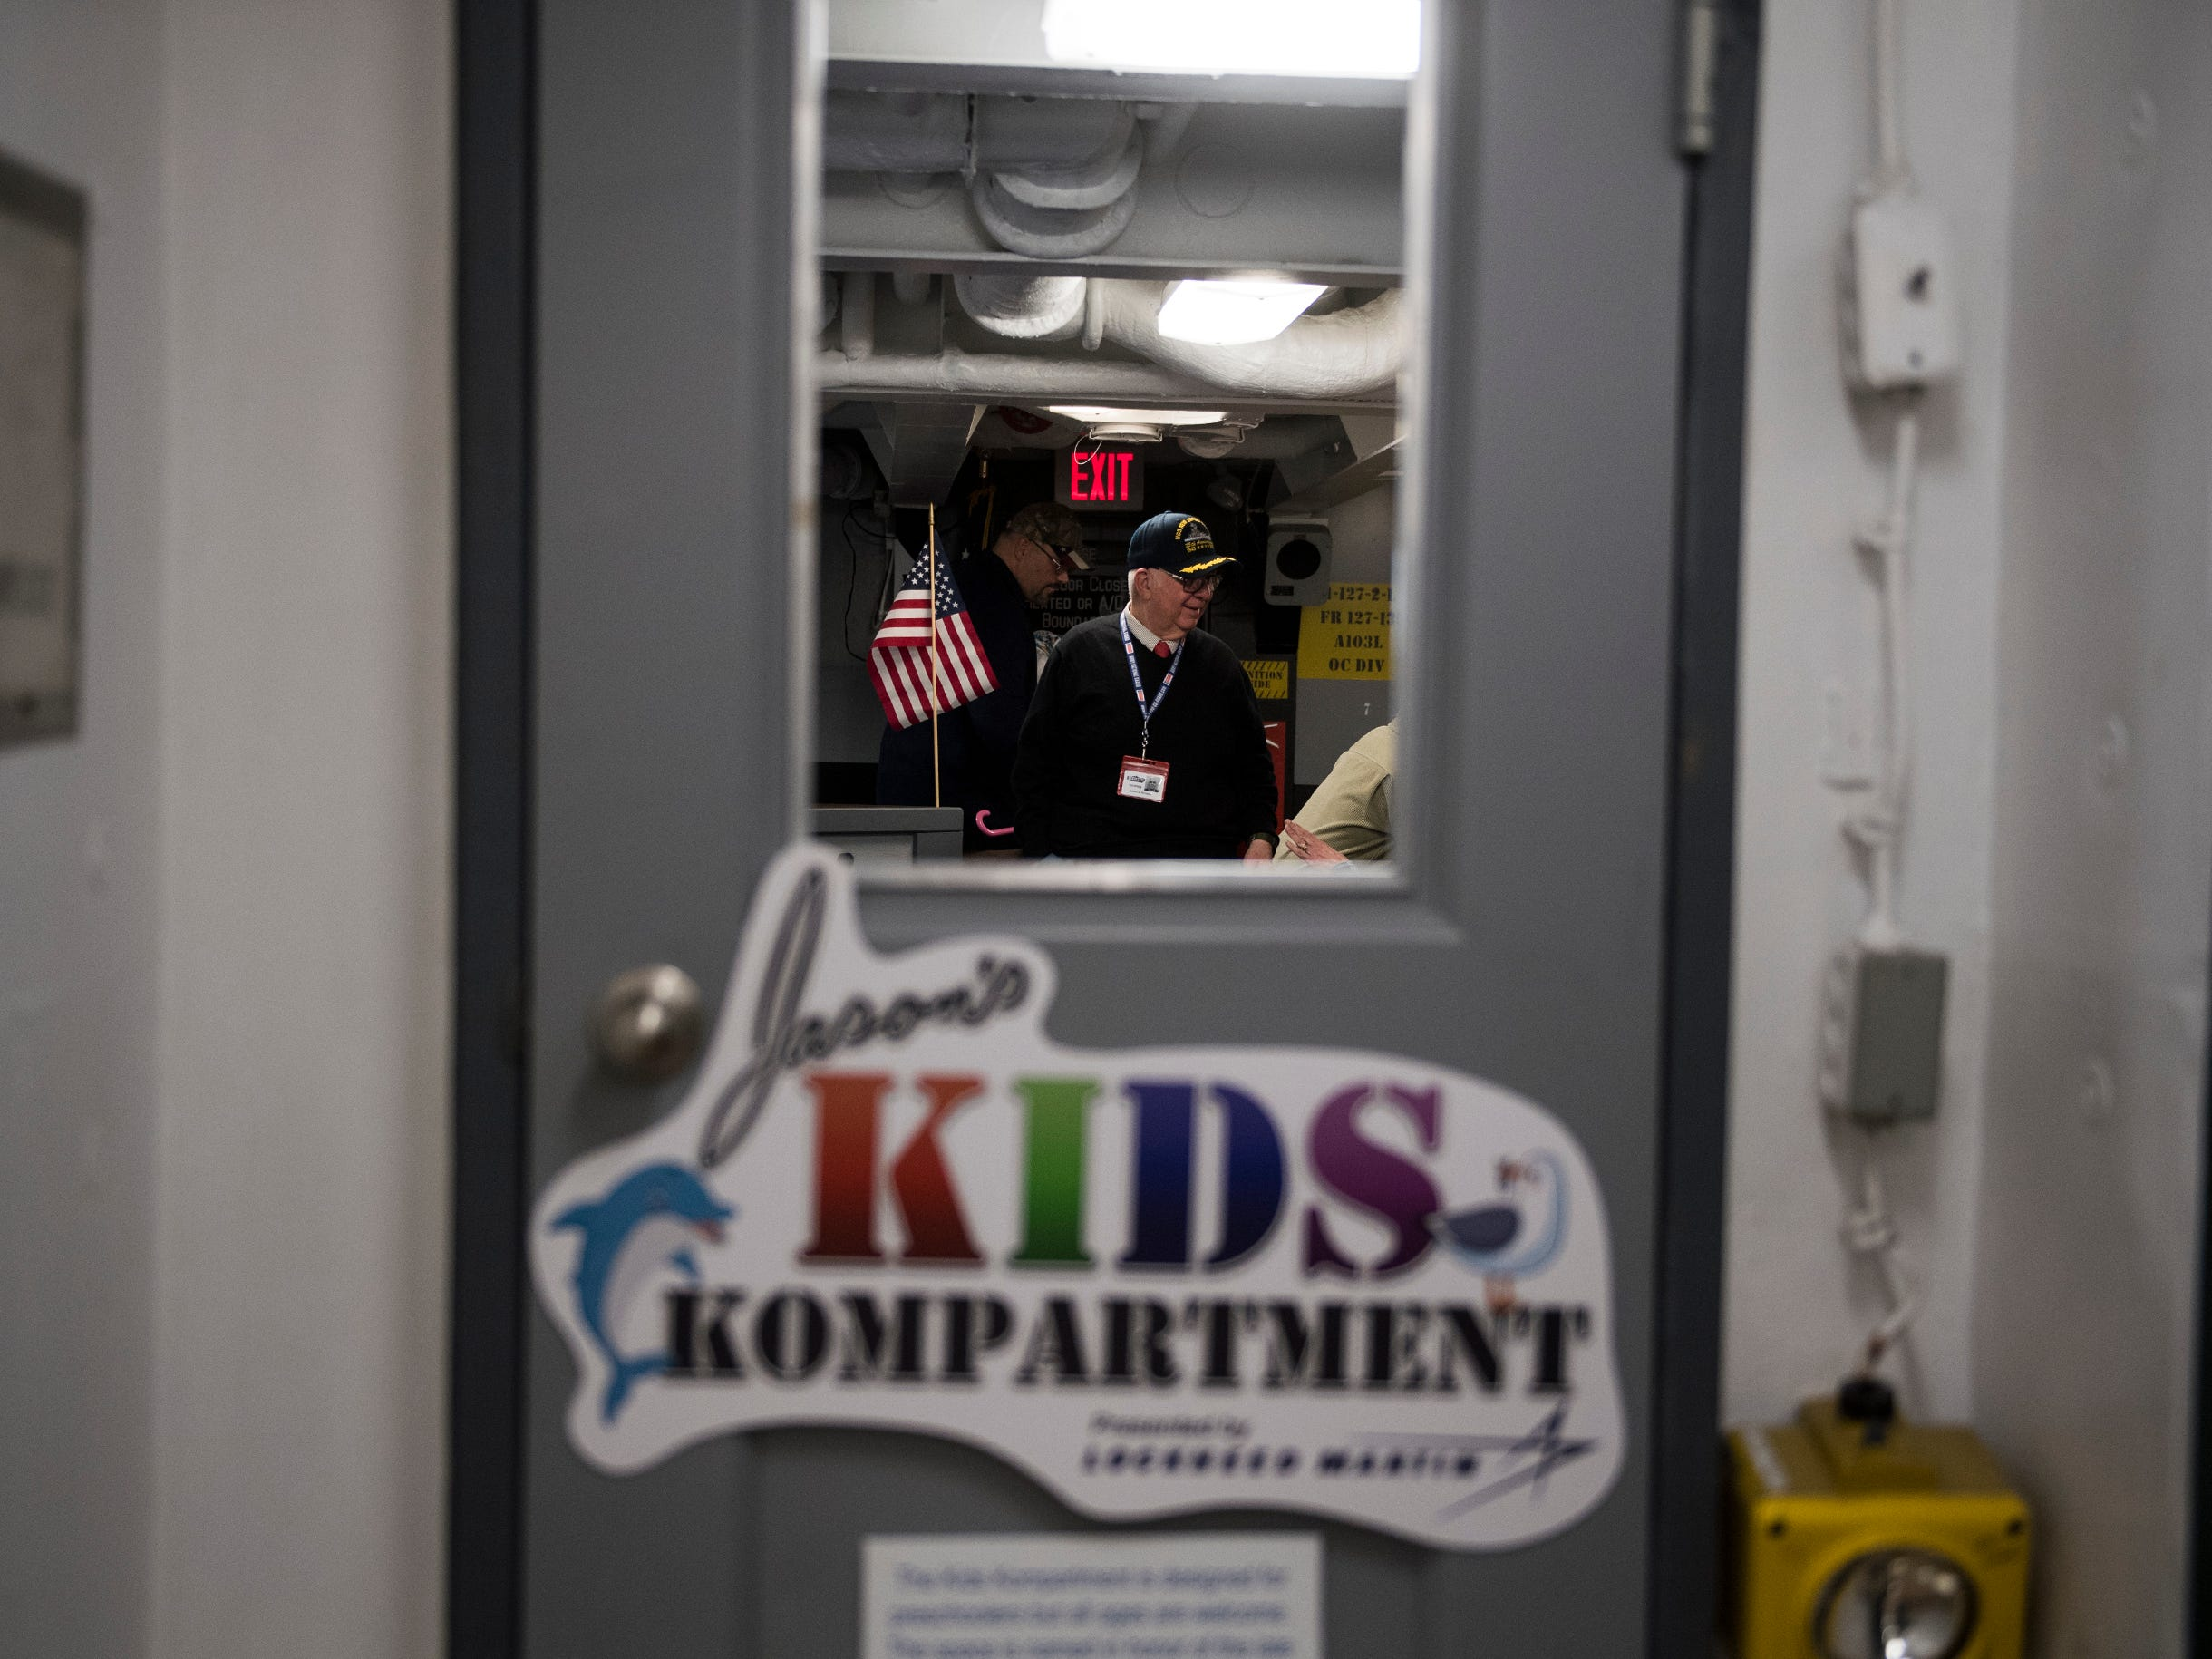 The entrance to Jason's Kids Kompartment Thursday, March 21, 2019 aboard the USS New Jersey battleship in Camden, N.J.